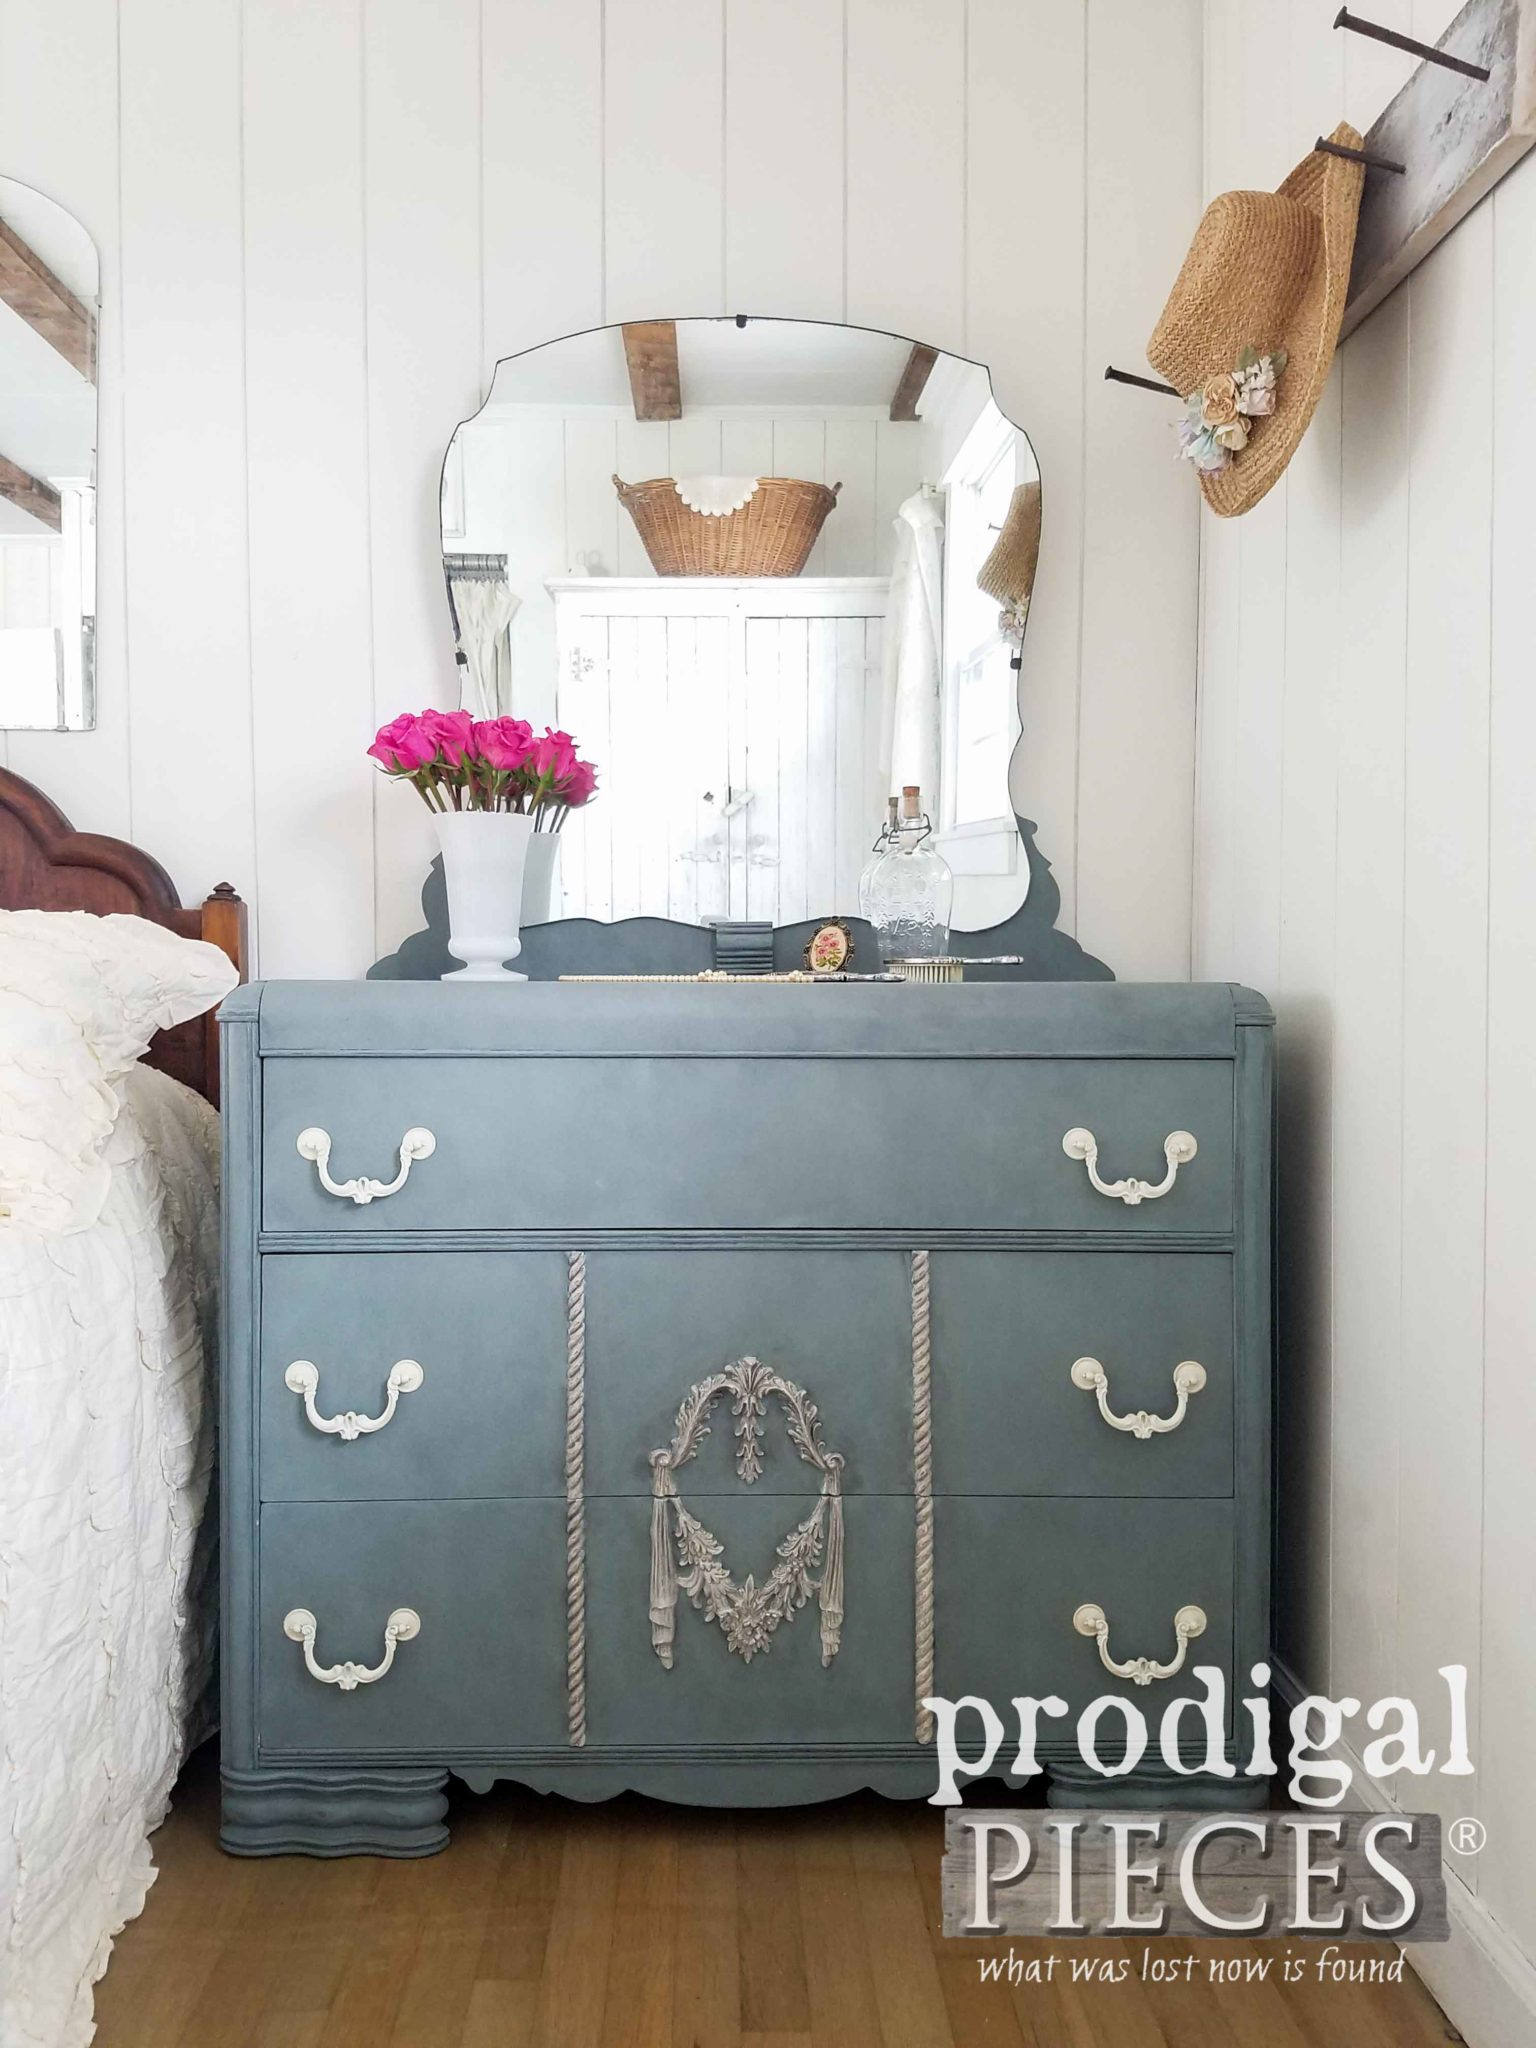 Art Deco Mirrored Dresser in Vintage Duck Egg with Grunge Gray Wax by Prodigal Pieces | prodigalpieces.com